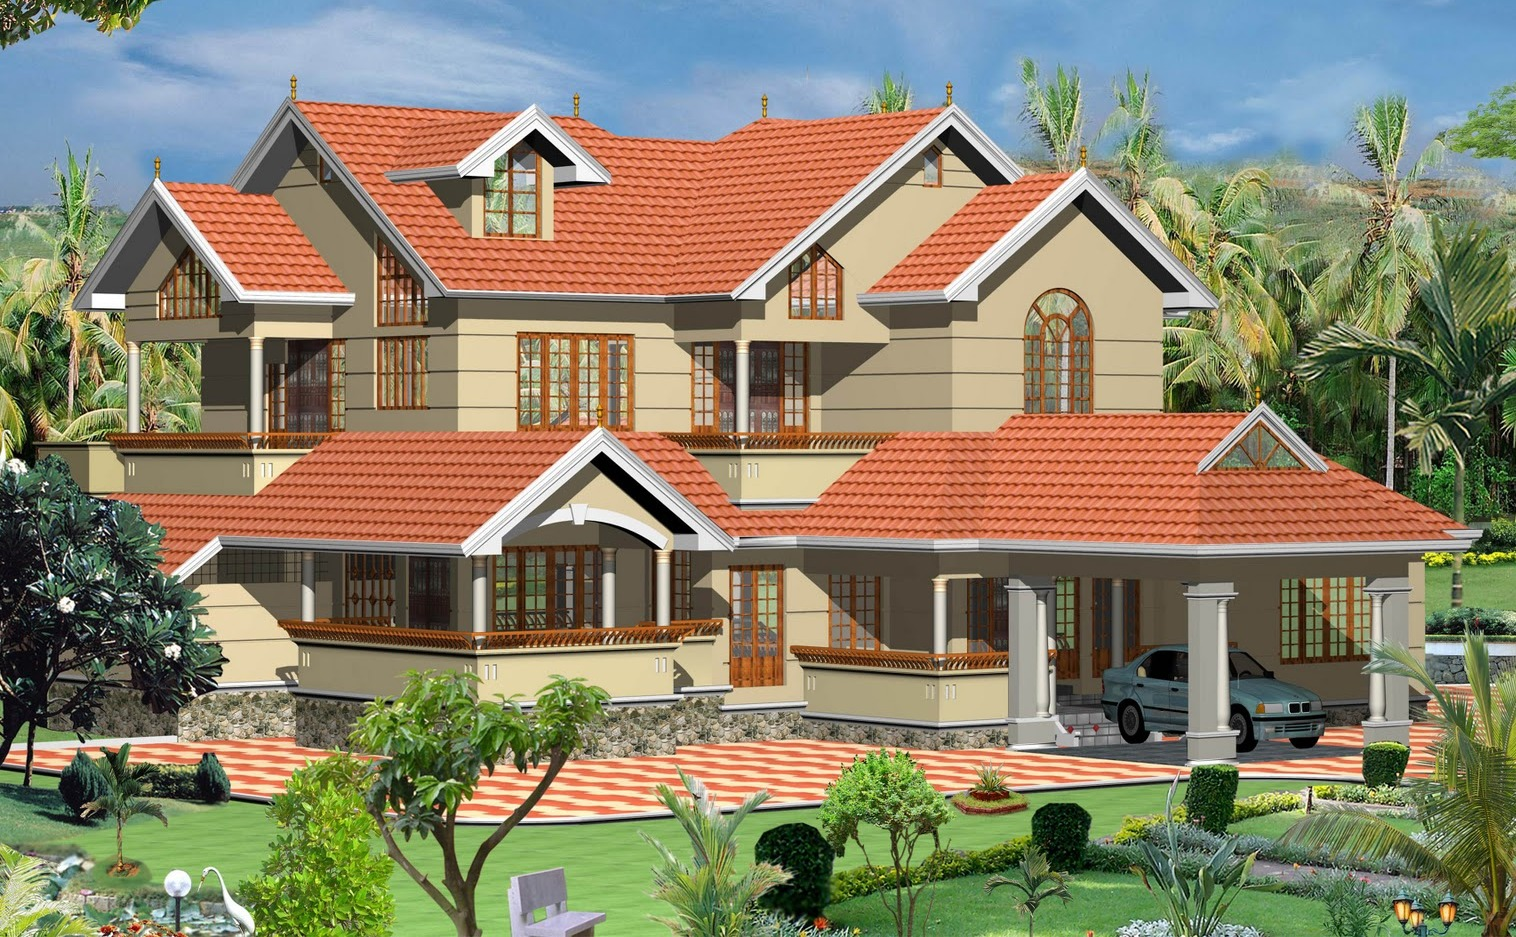 House plans and design types of architectural home designs Types of house plans